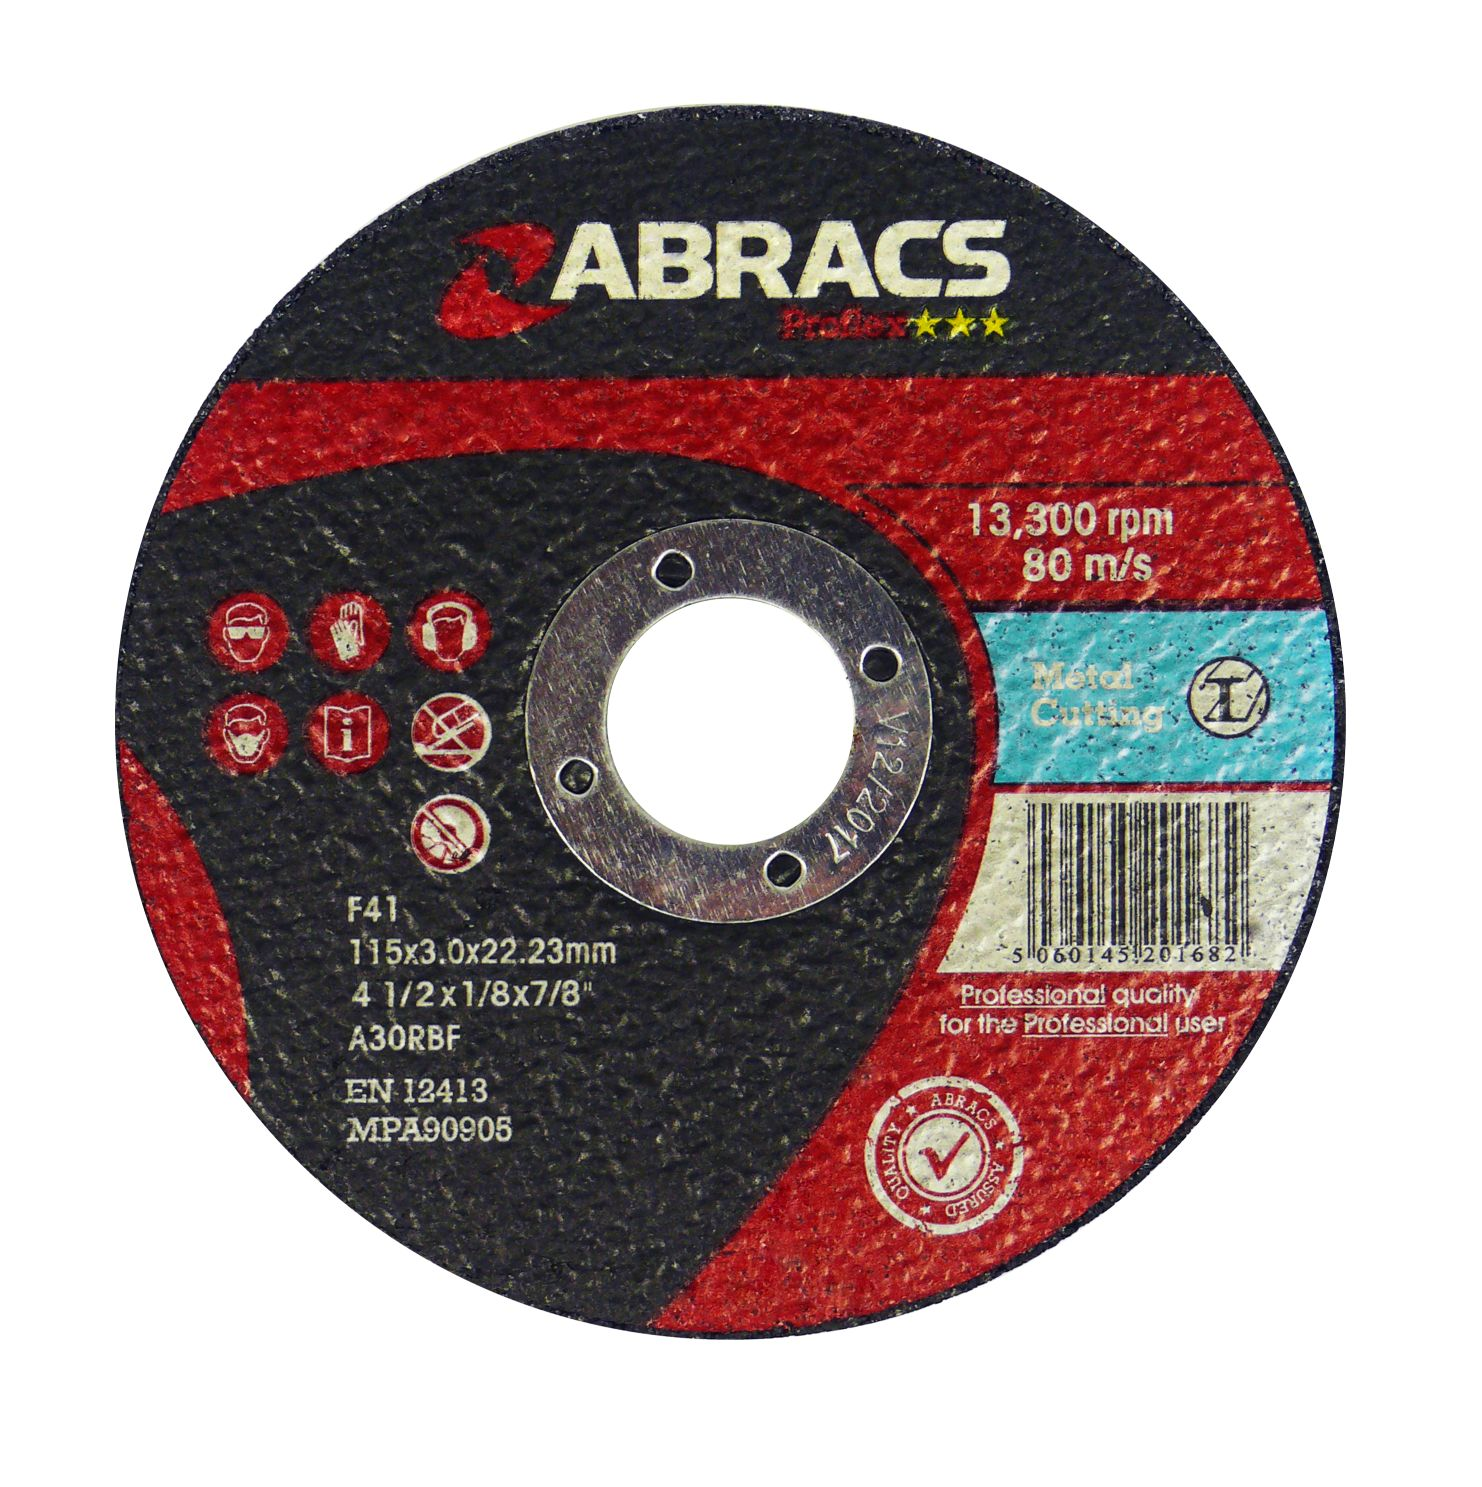 METAL CUTTING DISC - FLAT 230 X 3.0 X 22MM